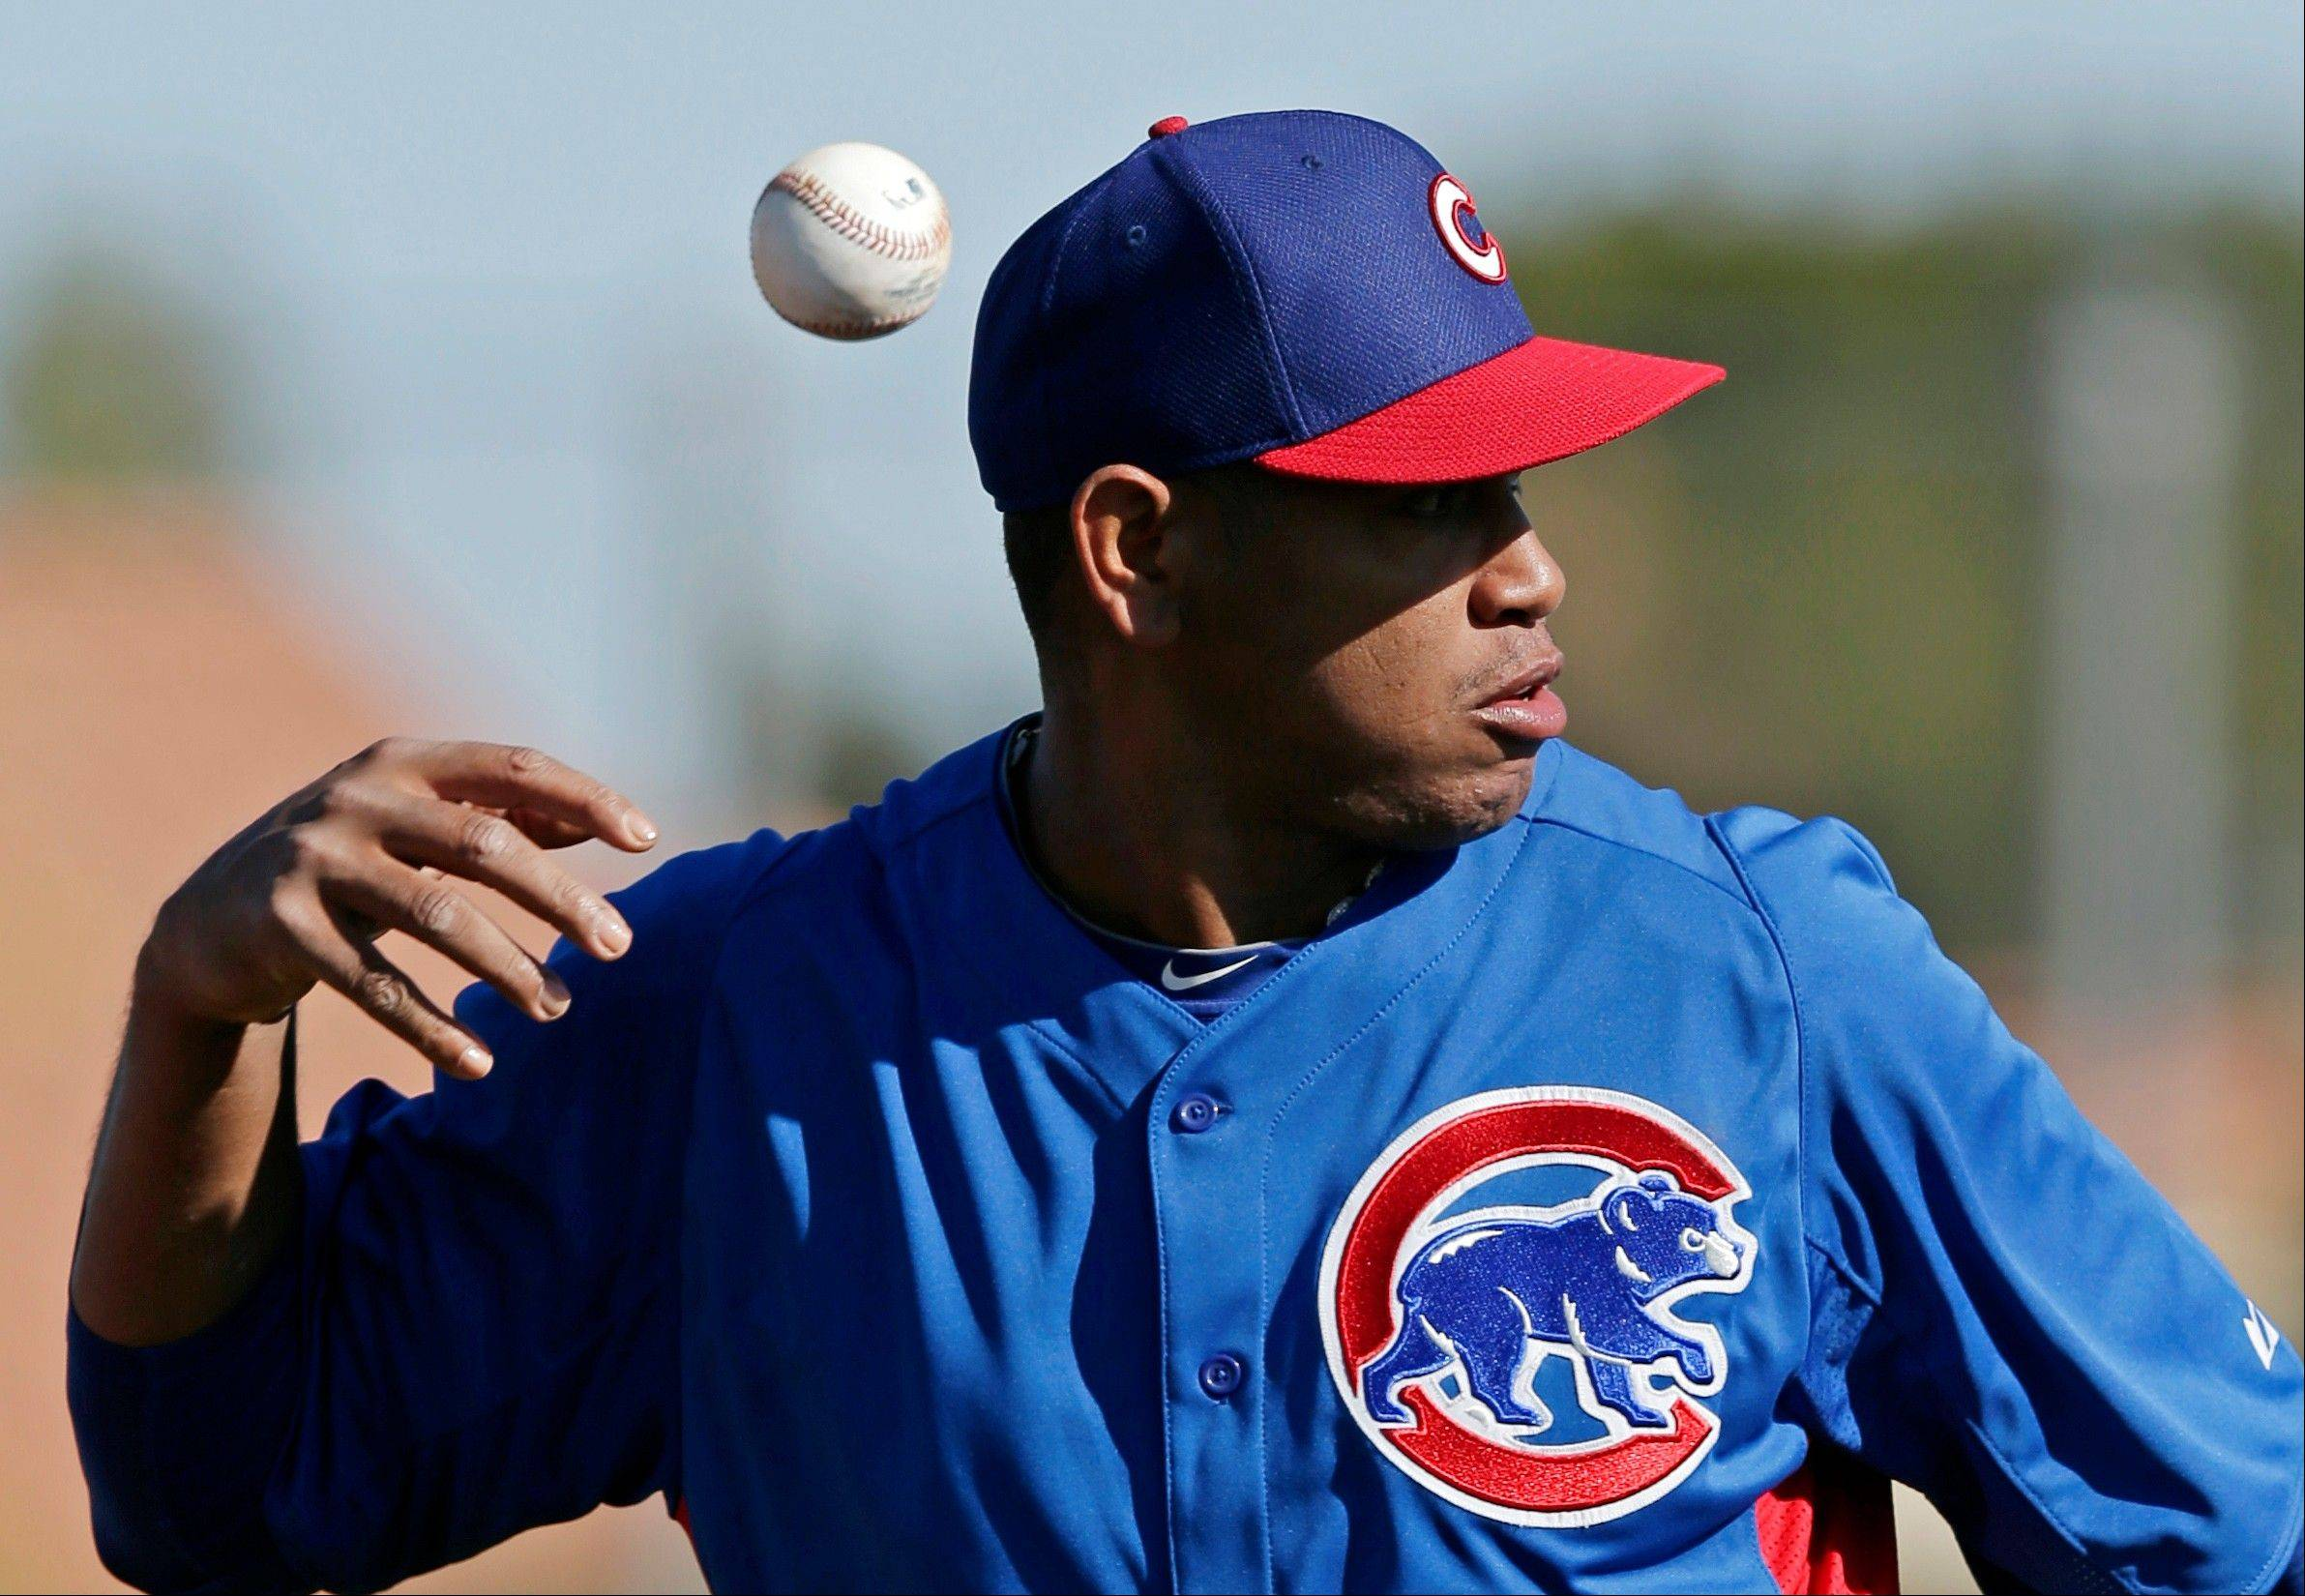 Chicago Cubs' Carlos Marmol loses the grip on a ball during a baseball spring training workout Thursday, Feb. 14, 2013, in Mesa, Ariz. (AP Photo/Morry Gash)